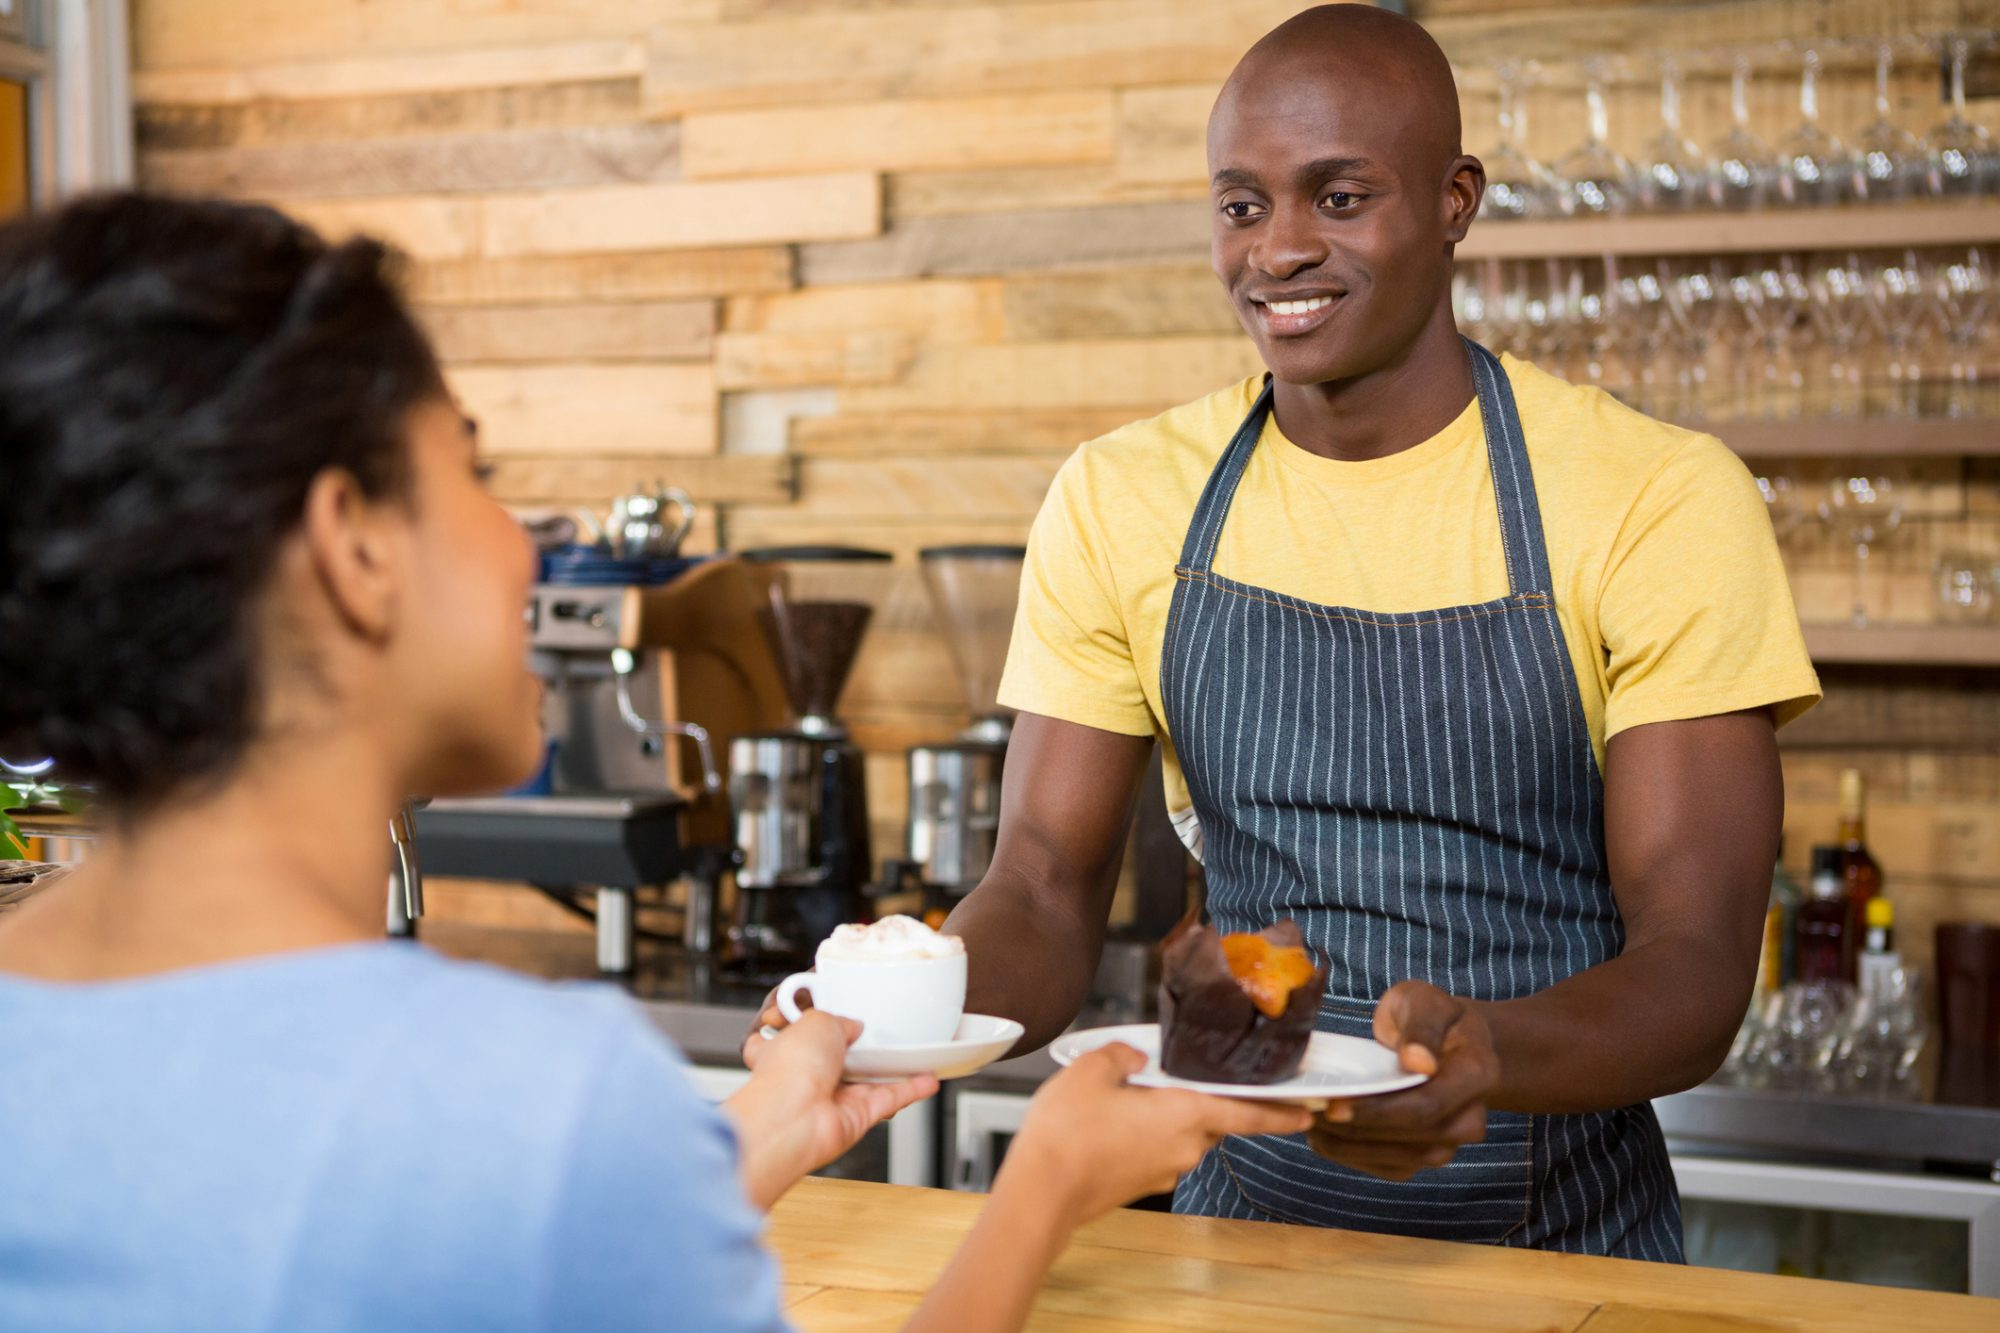 Barista Serving Coffee and Desert